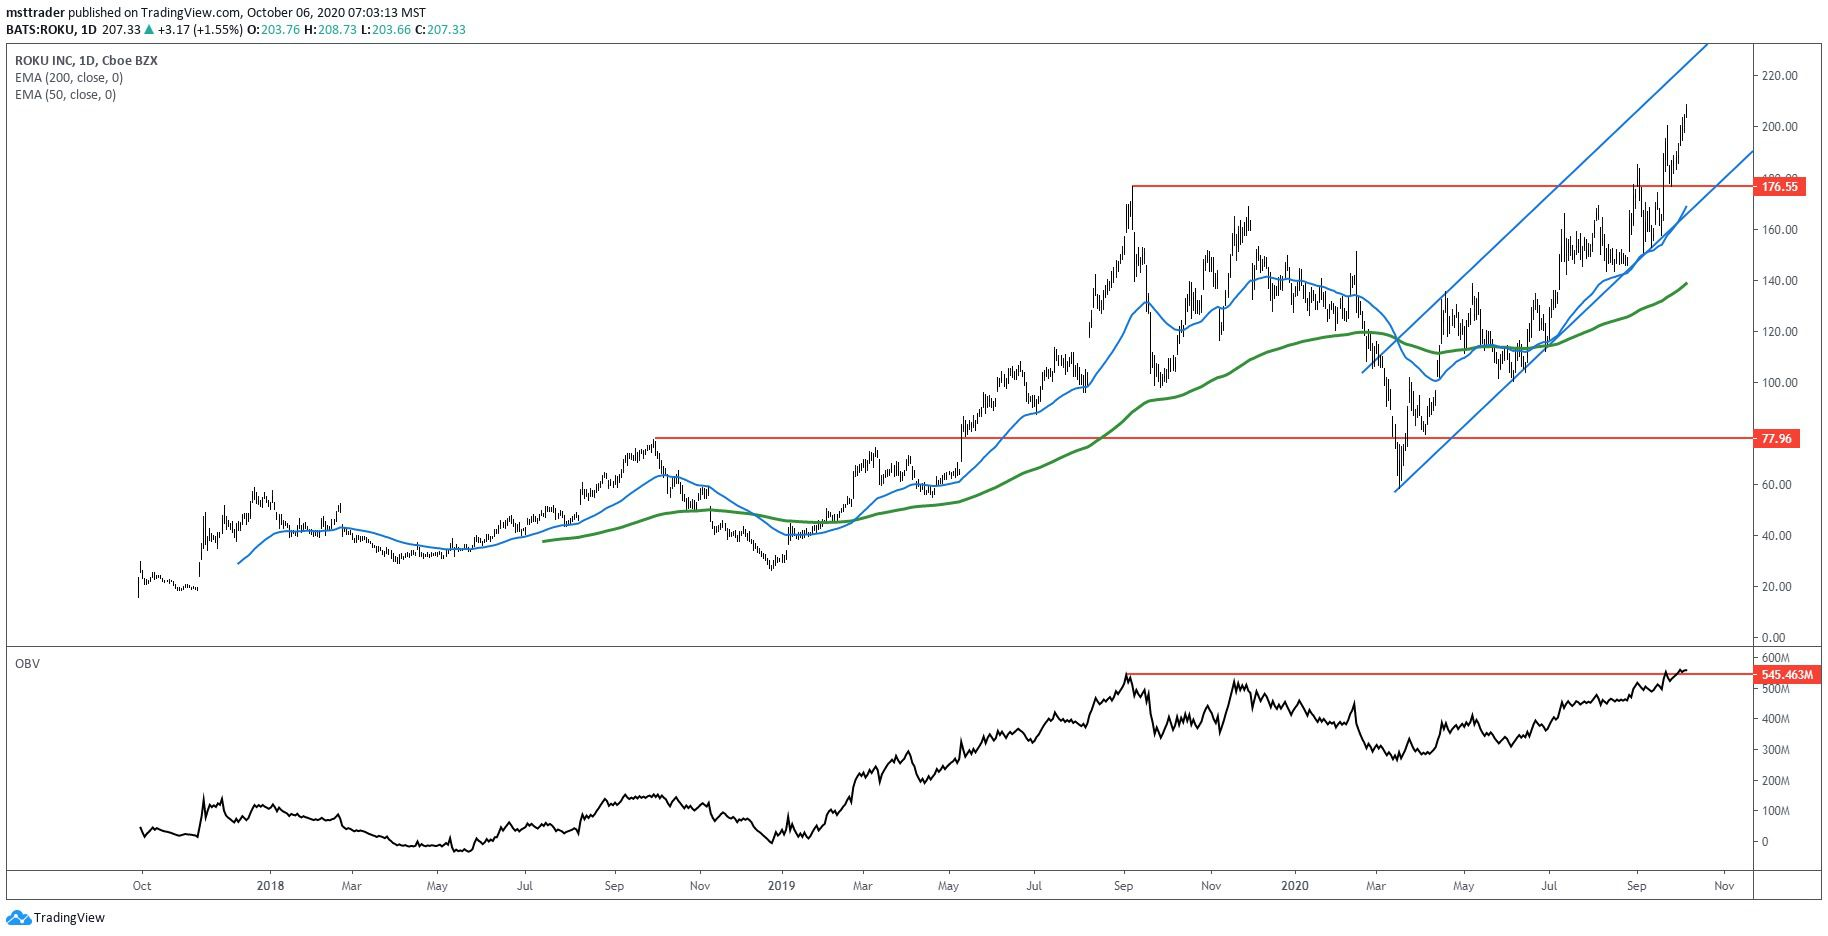 Daily chart showing the share price performance of Roku, Inc. (ROKU)